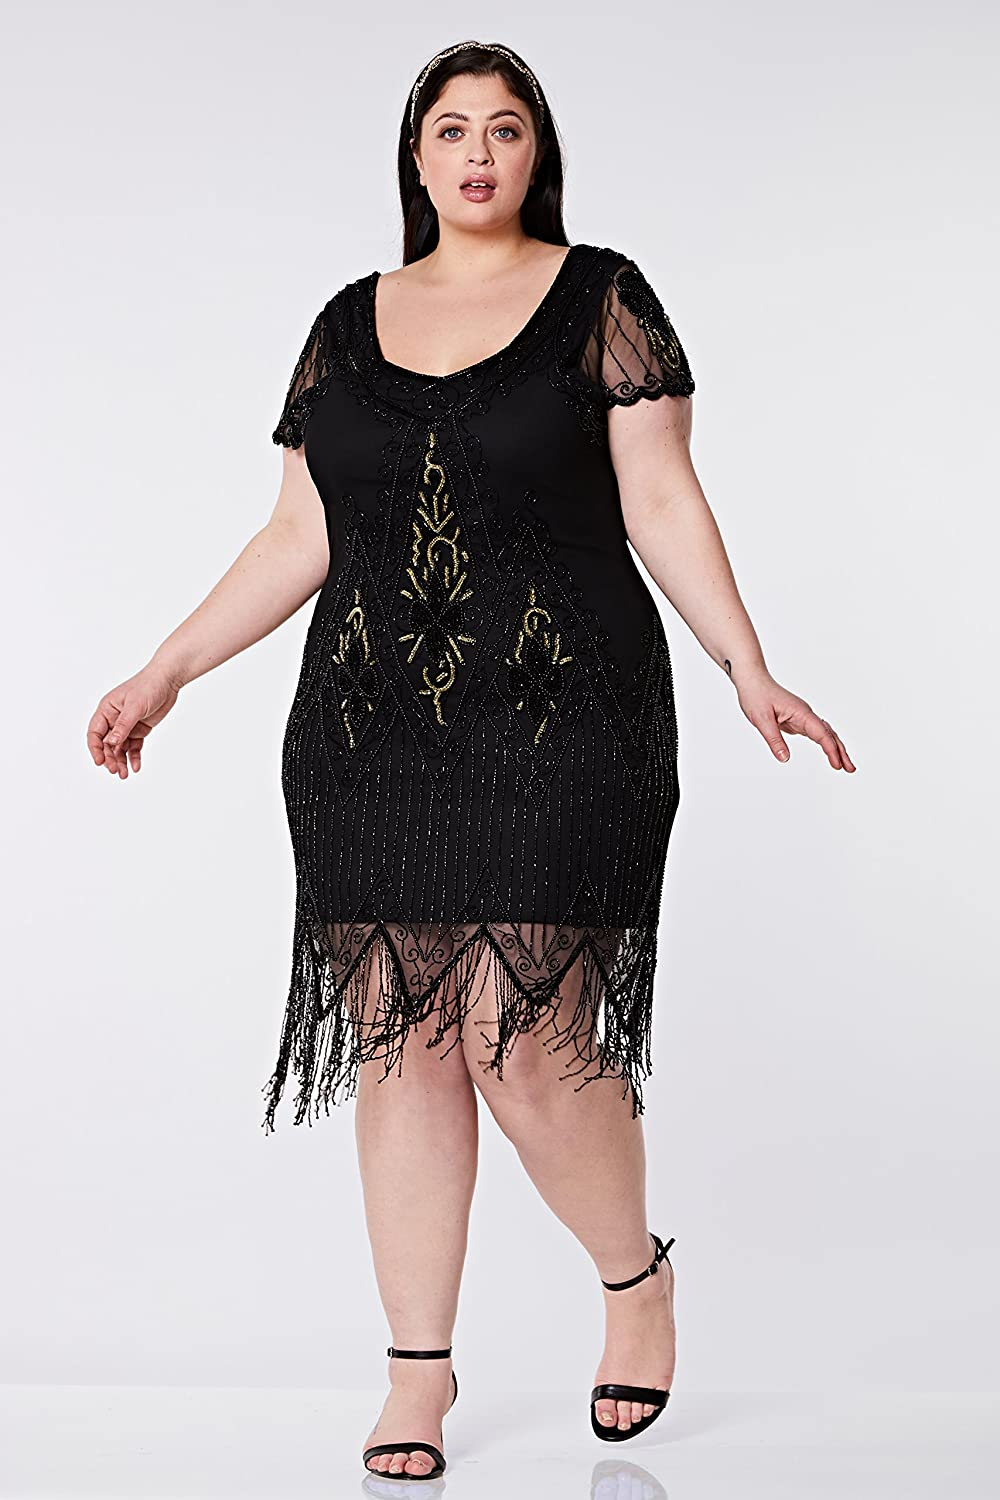 Flapper Dresses & Quality Flapper Costumes gatsbylady london Annette Vintage Inspired Fringe Flapper Dress in Black Gold $124.86 AT vintagedancer.com